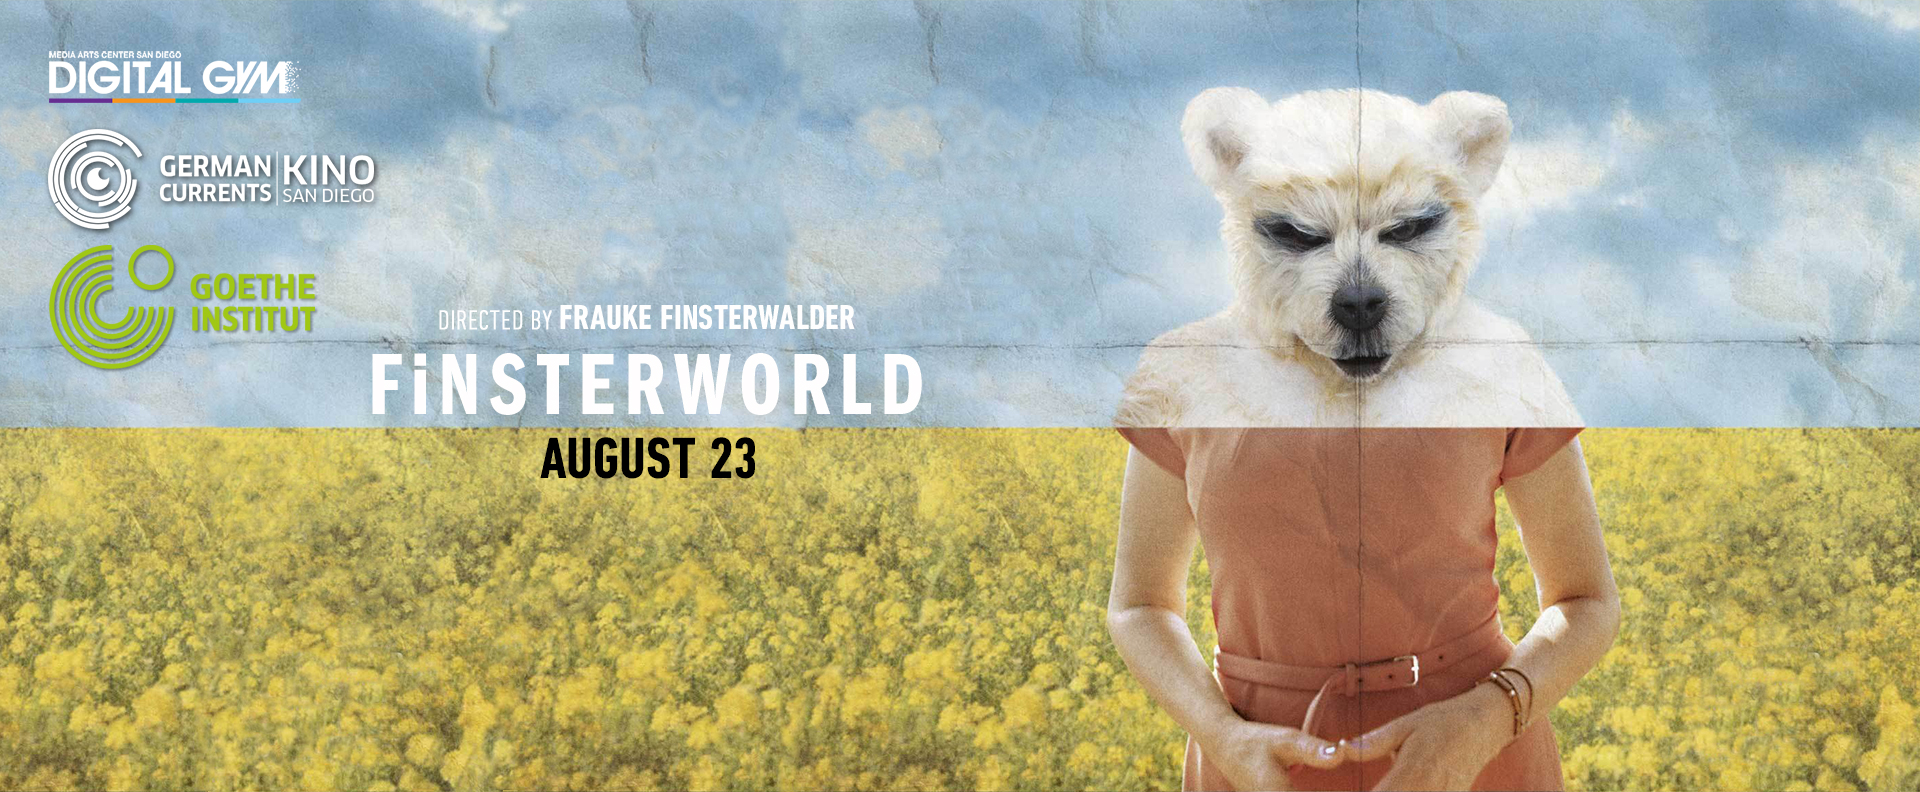 German Currents Kino Presents: FINSTERWORLD (August 23)